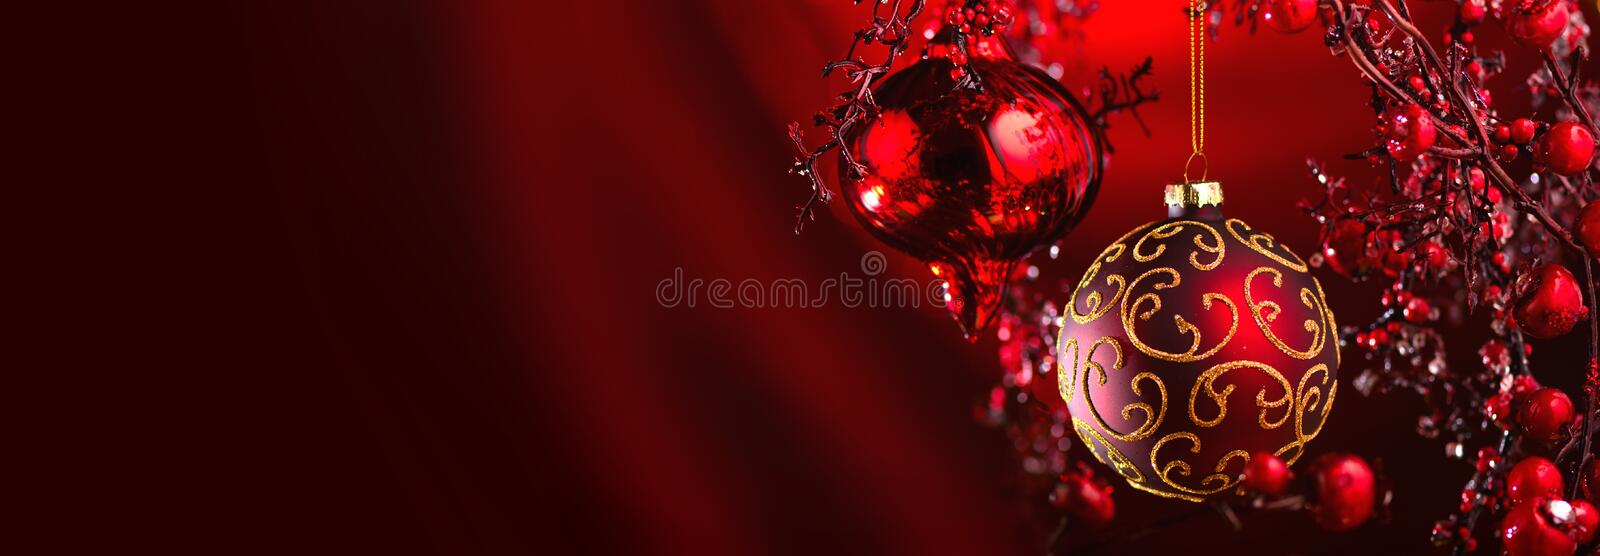 Christmas and New Year Red Decoration. Abstract Blurred Bokeh Holiday Background with beautiful baubles and Blinking Garland. Christmas Tree Lights Twinkling royalty free stock photos